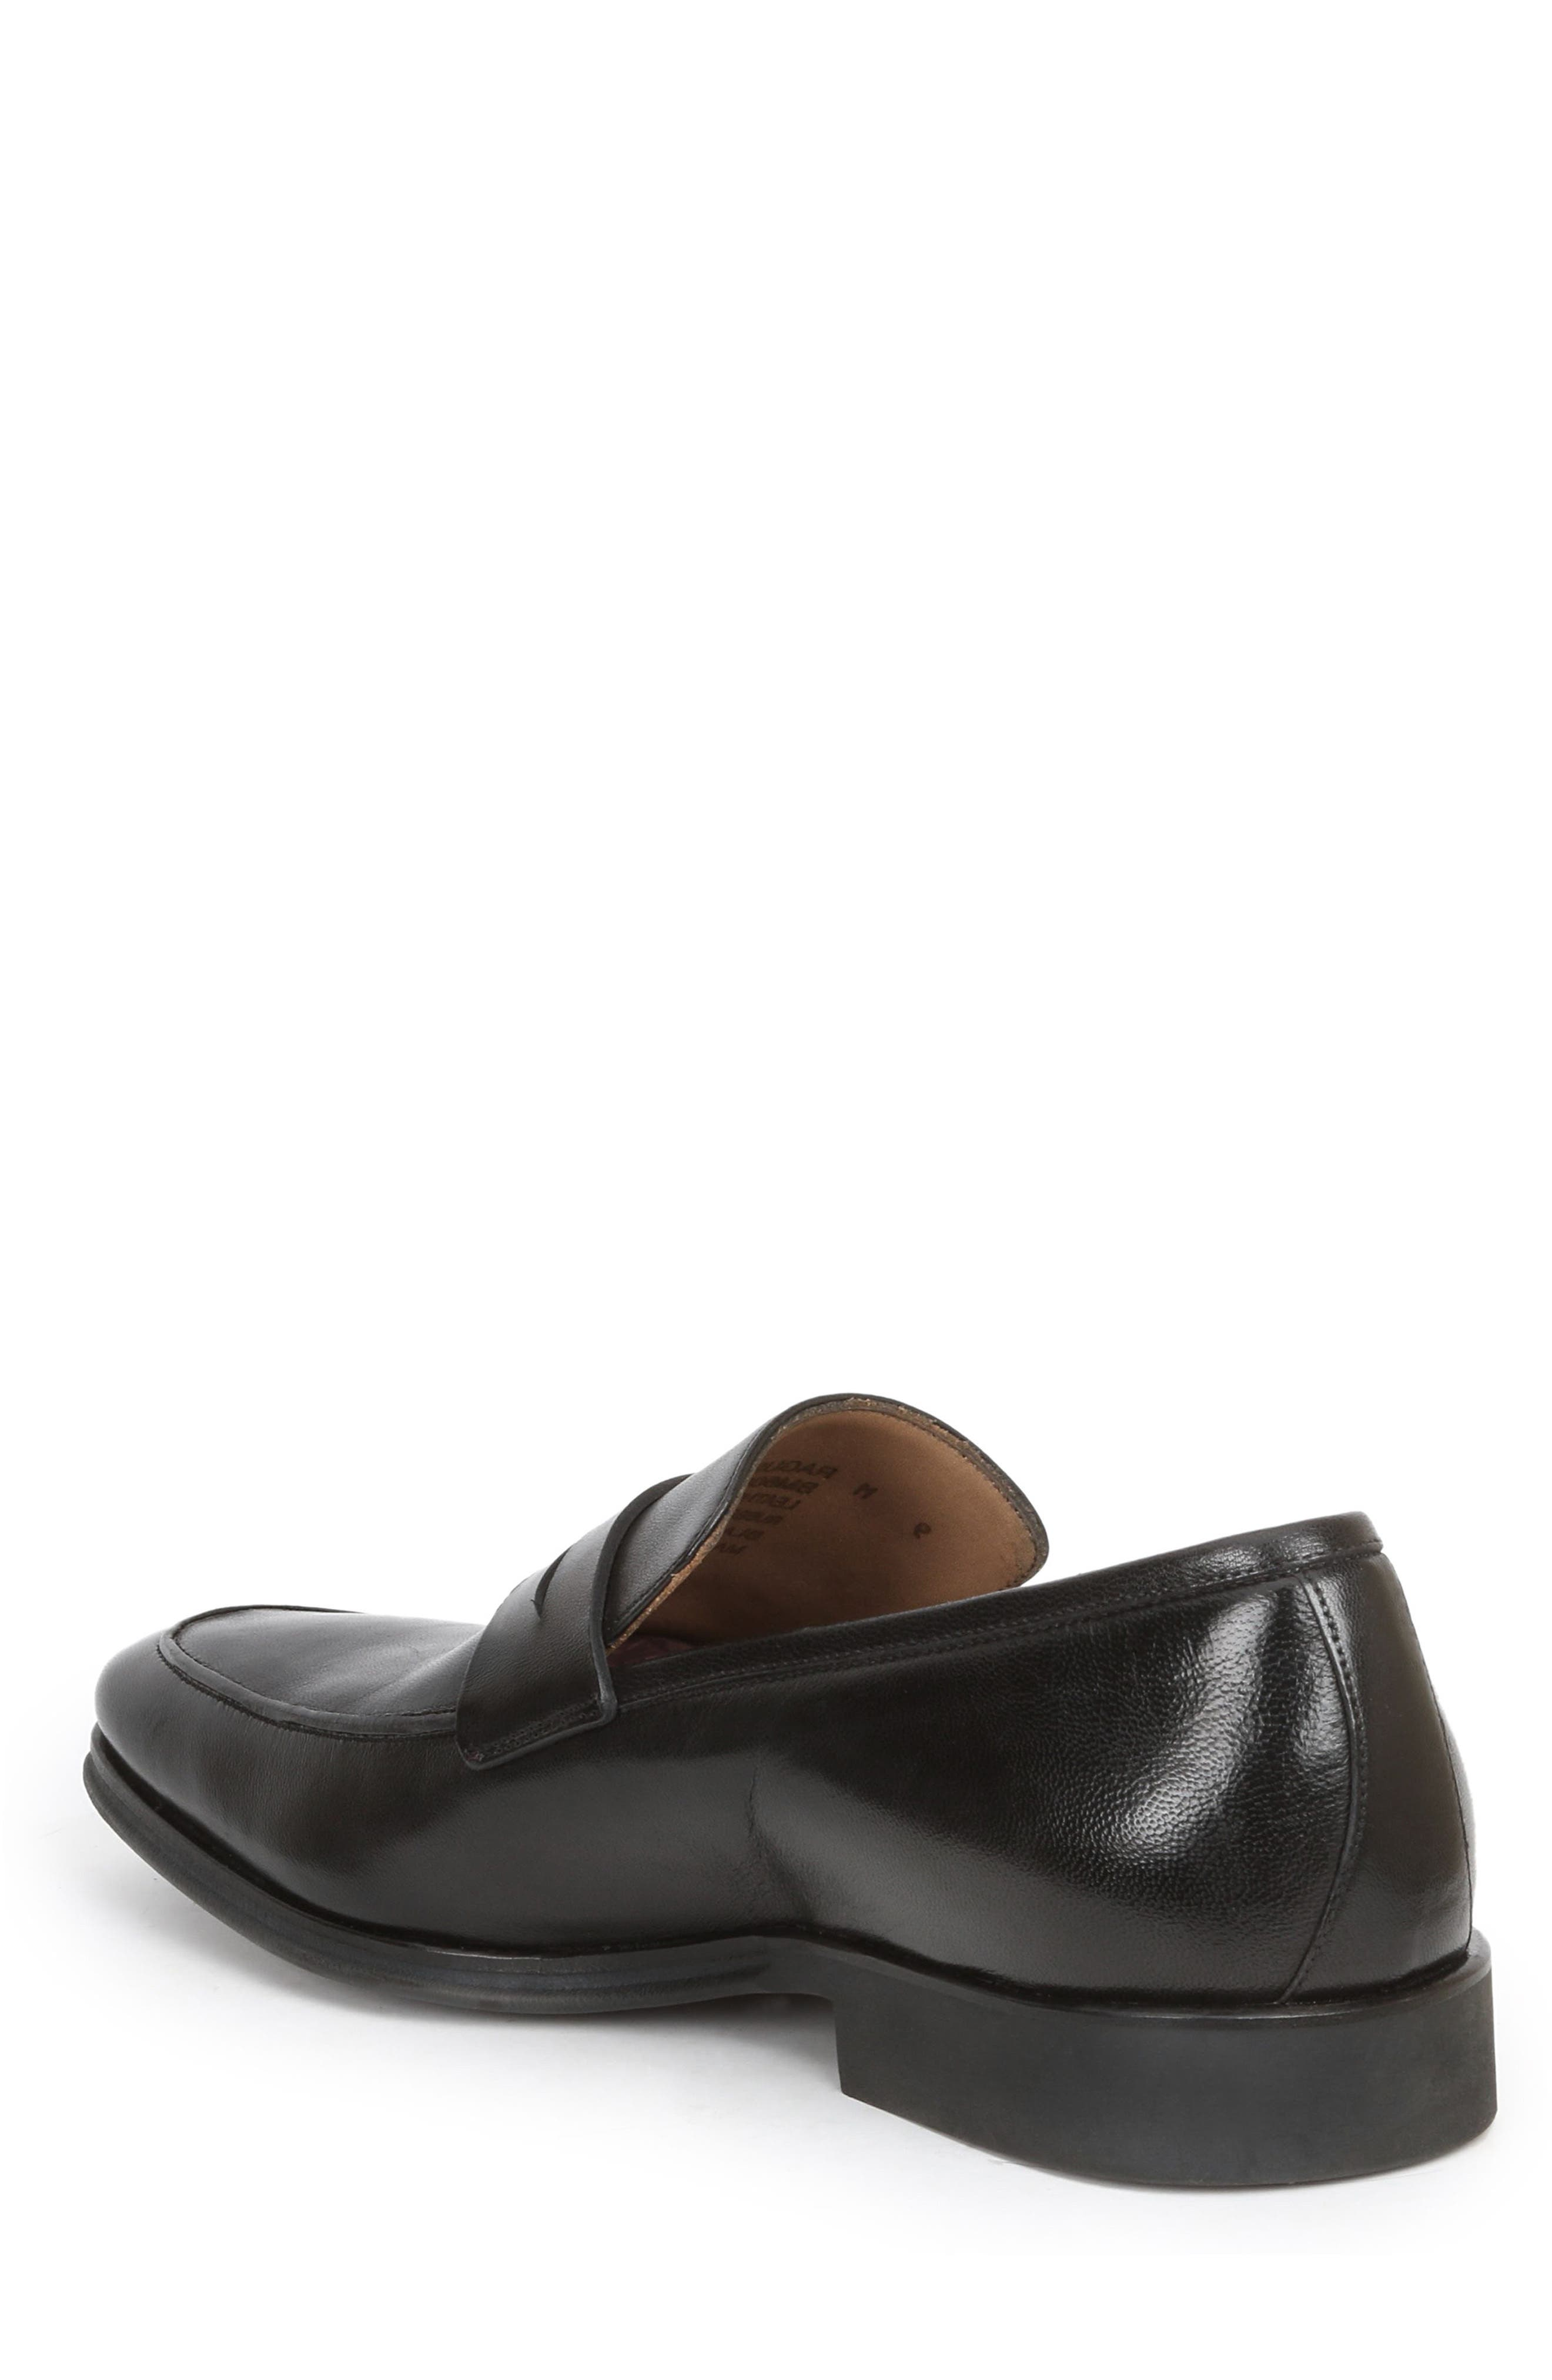 Ragusa Penny Loafer,                             Alternate thumbnail 4, color,